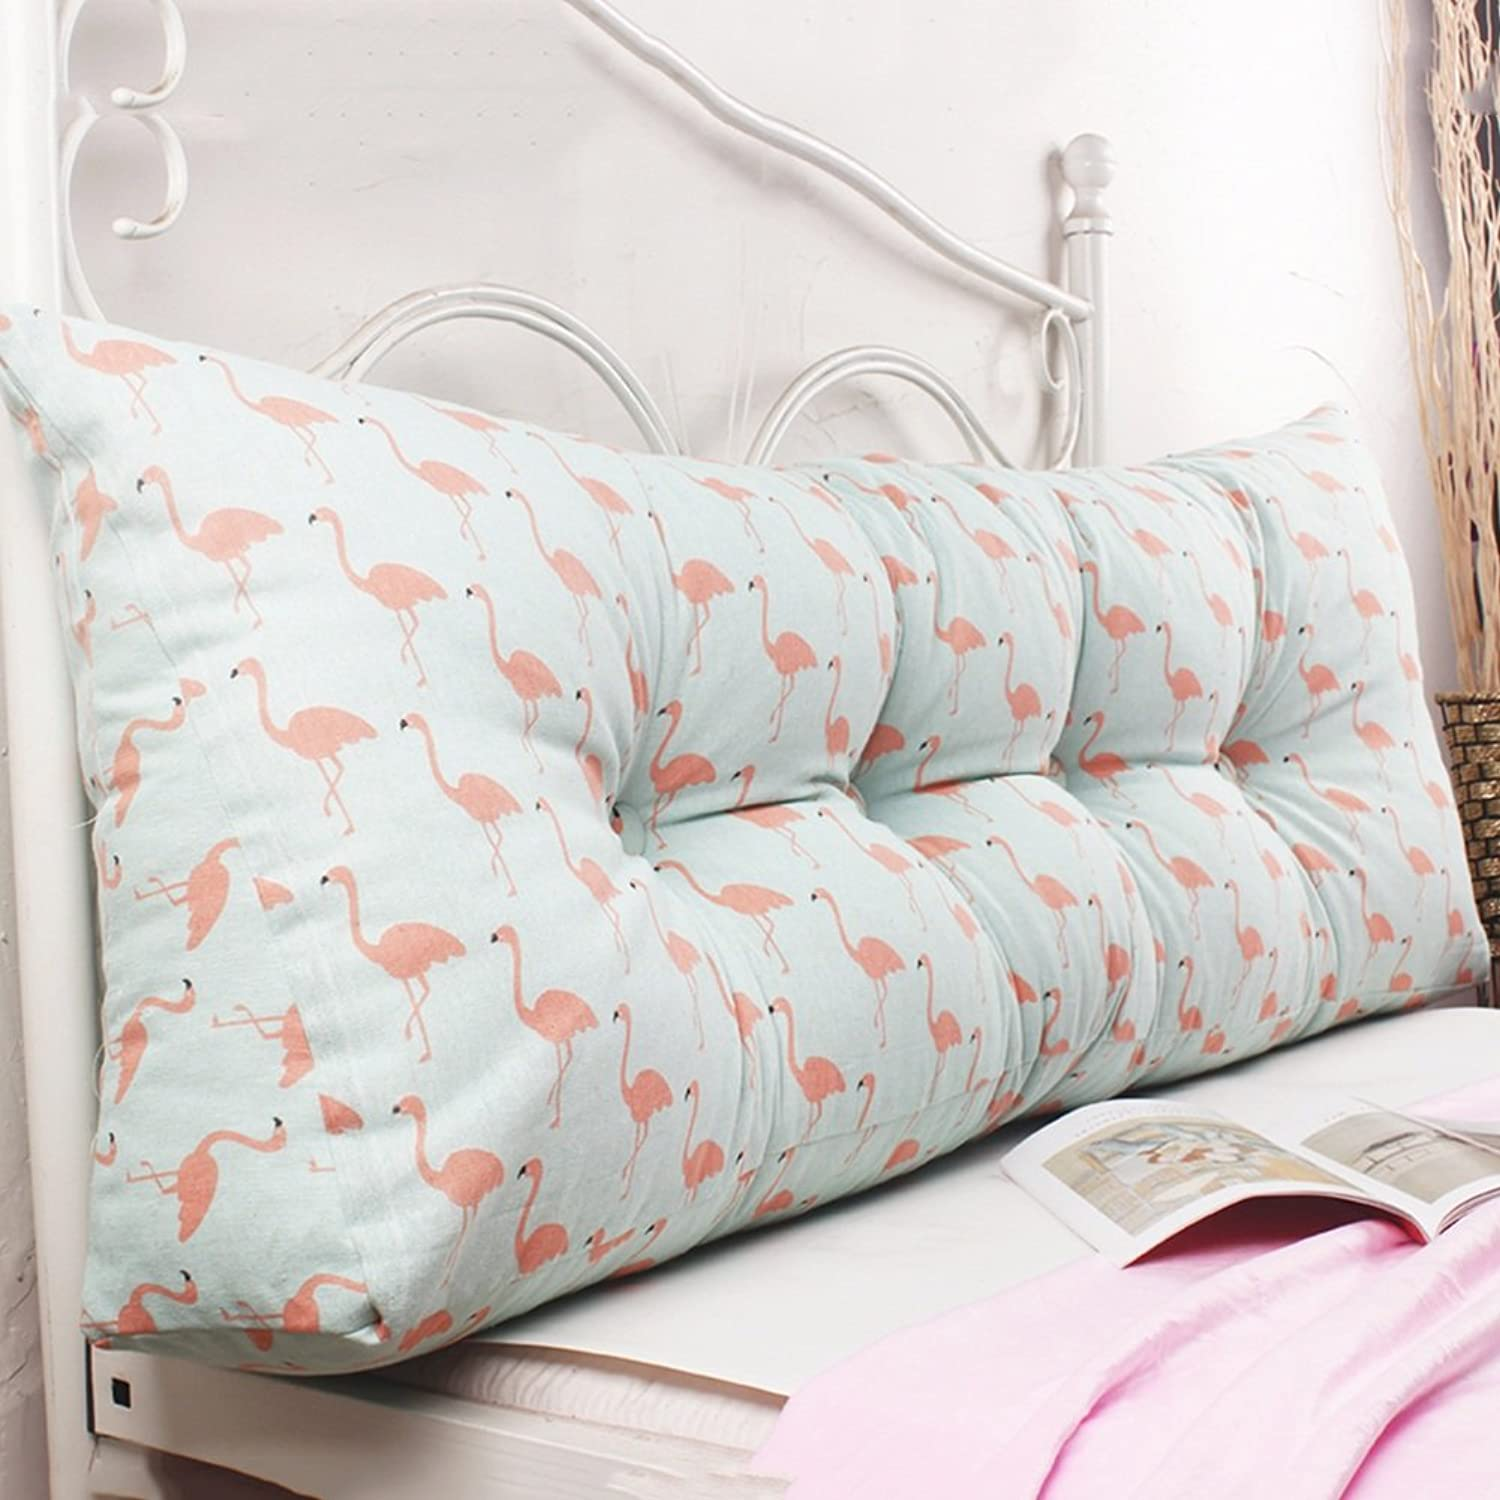 WENZHE Upholstered Fabric Headboard Bedside Cushion Pads Floral Princess Triangular Soft Case Bedroom Sofa Large Back Washable Country Style, 7 colors, 7 Sizes (color   6 , Size   100×45×20cm)